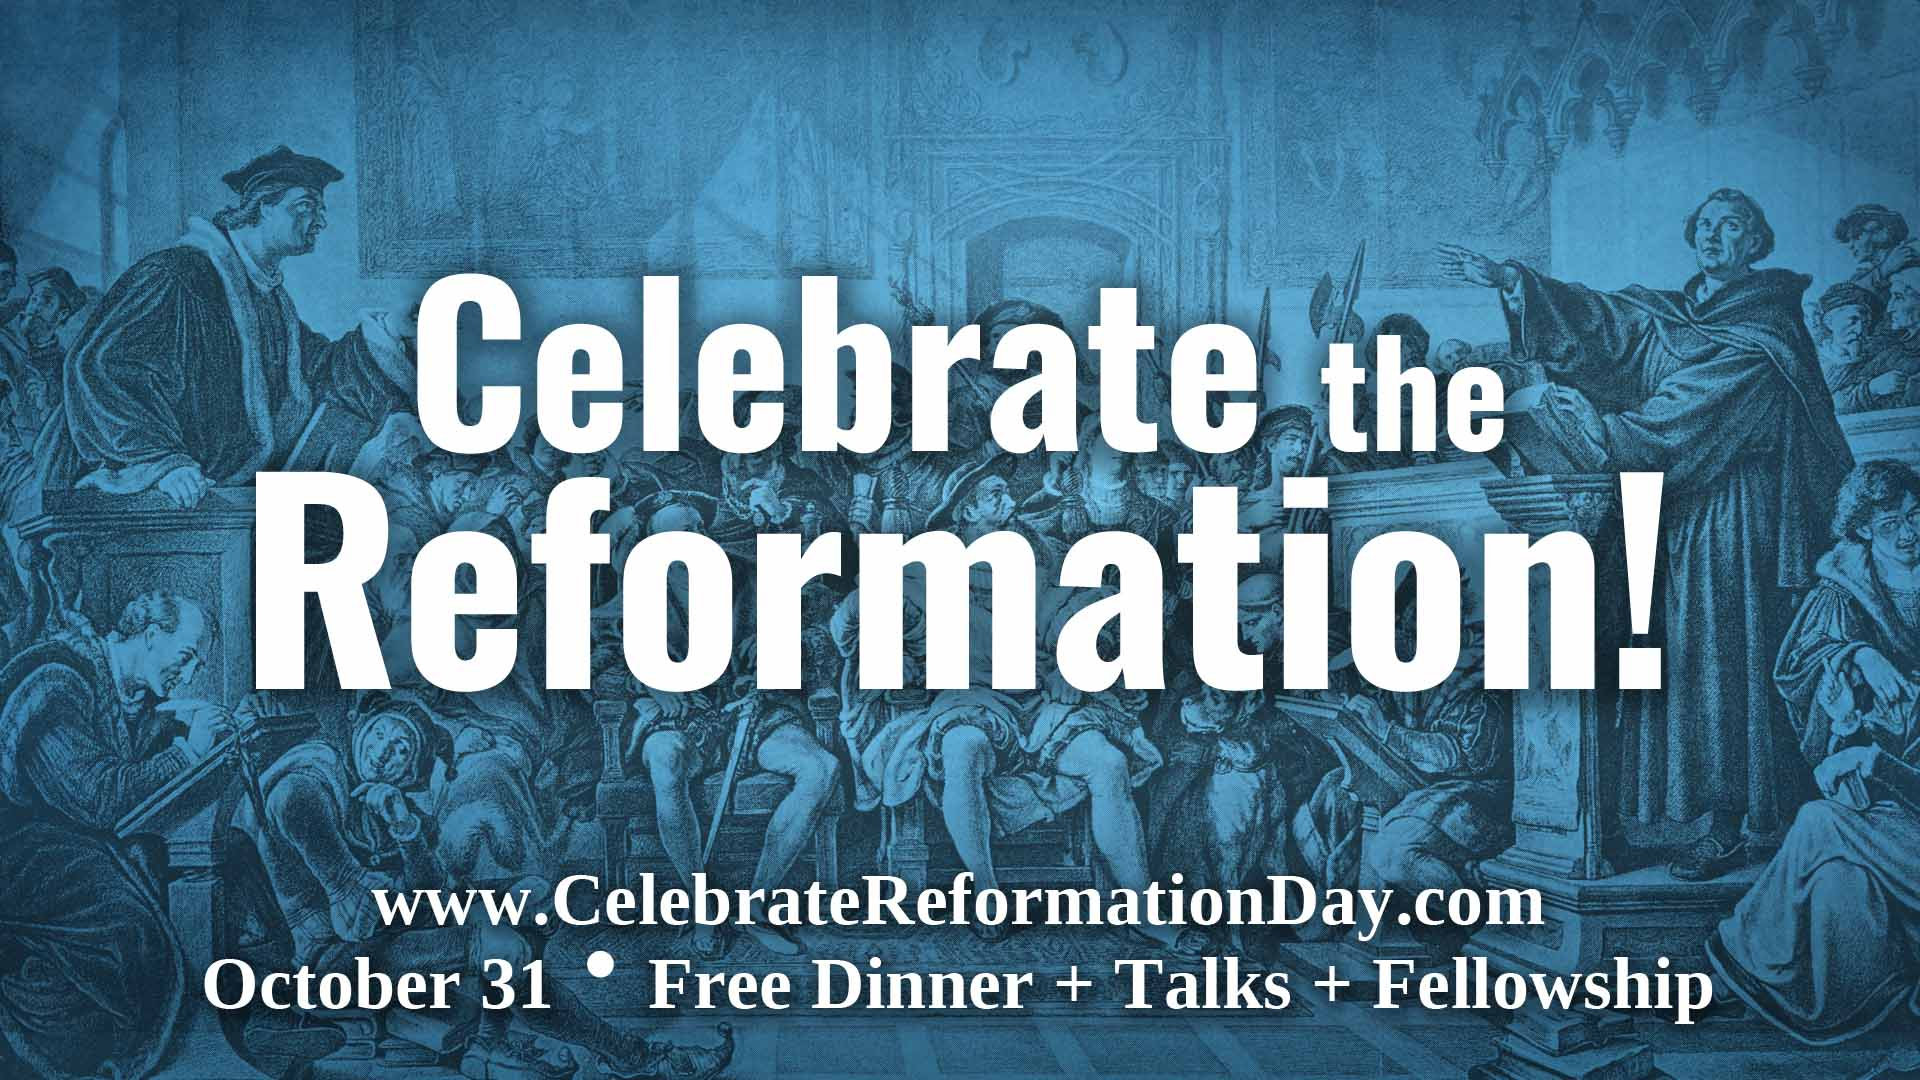 Celebrate Reformation Day!